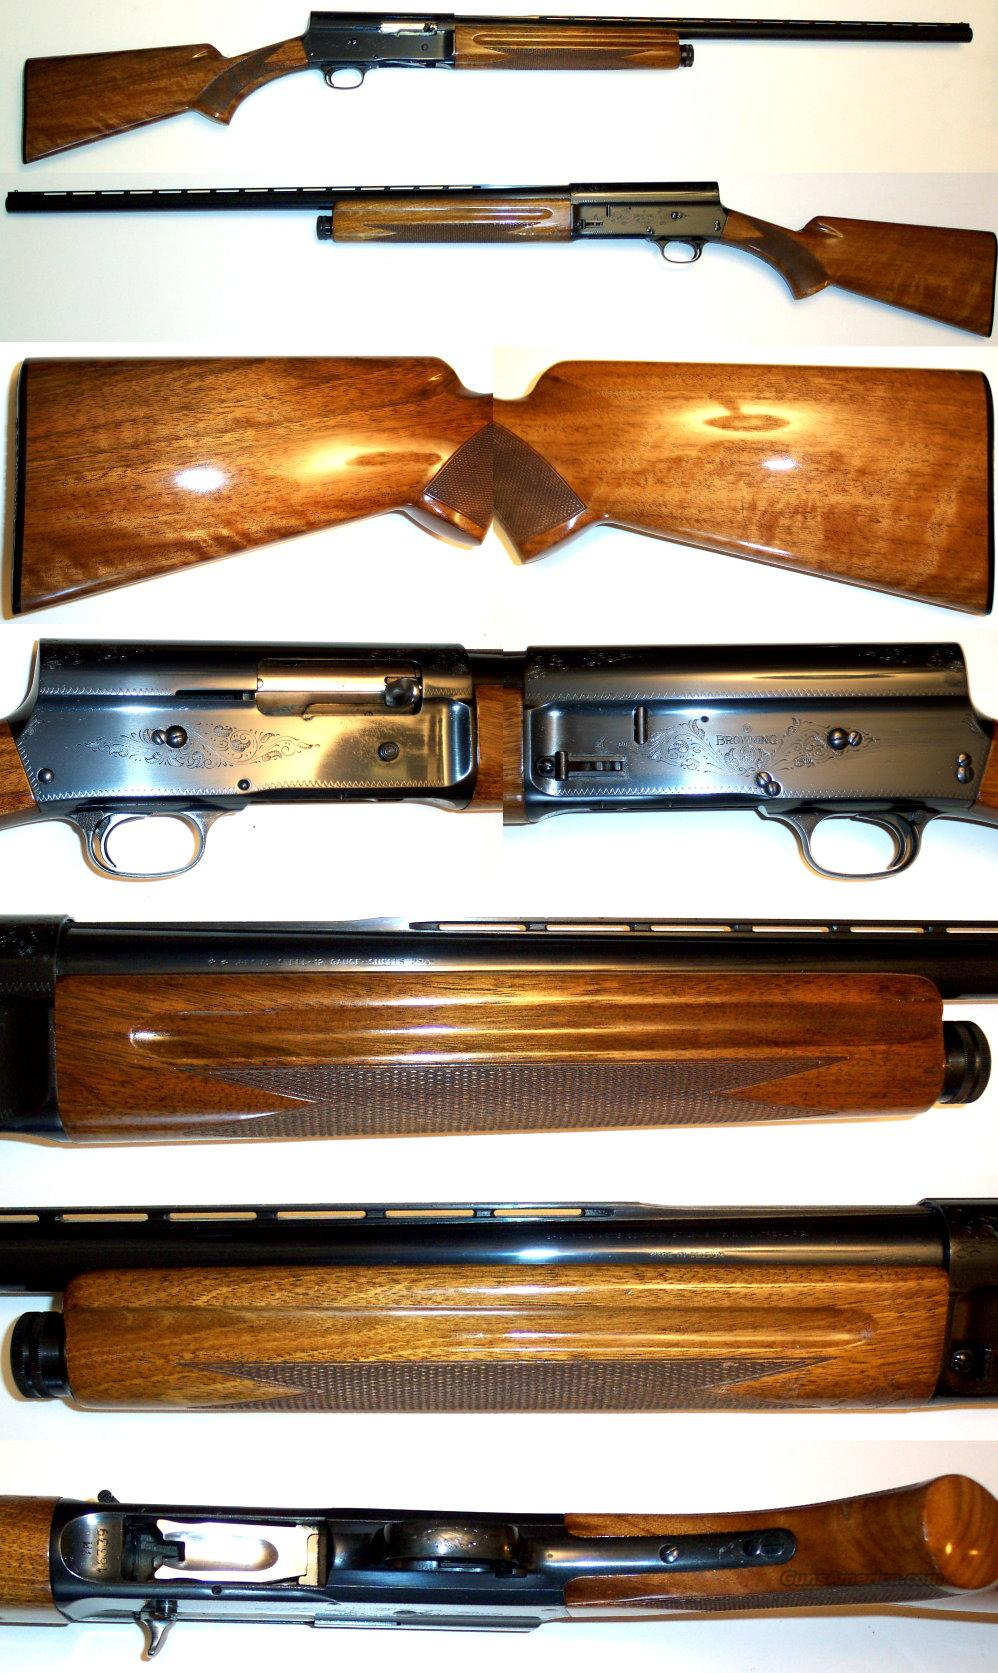 '67 Belgium Browning A5 12 Gauge  Guns > Shotguns > Browning Shotguns > Autoloaders > Hunting